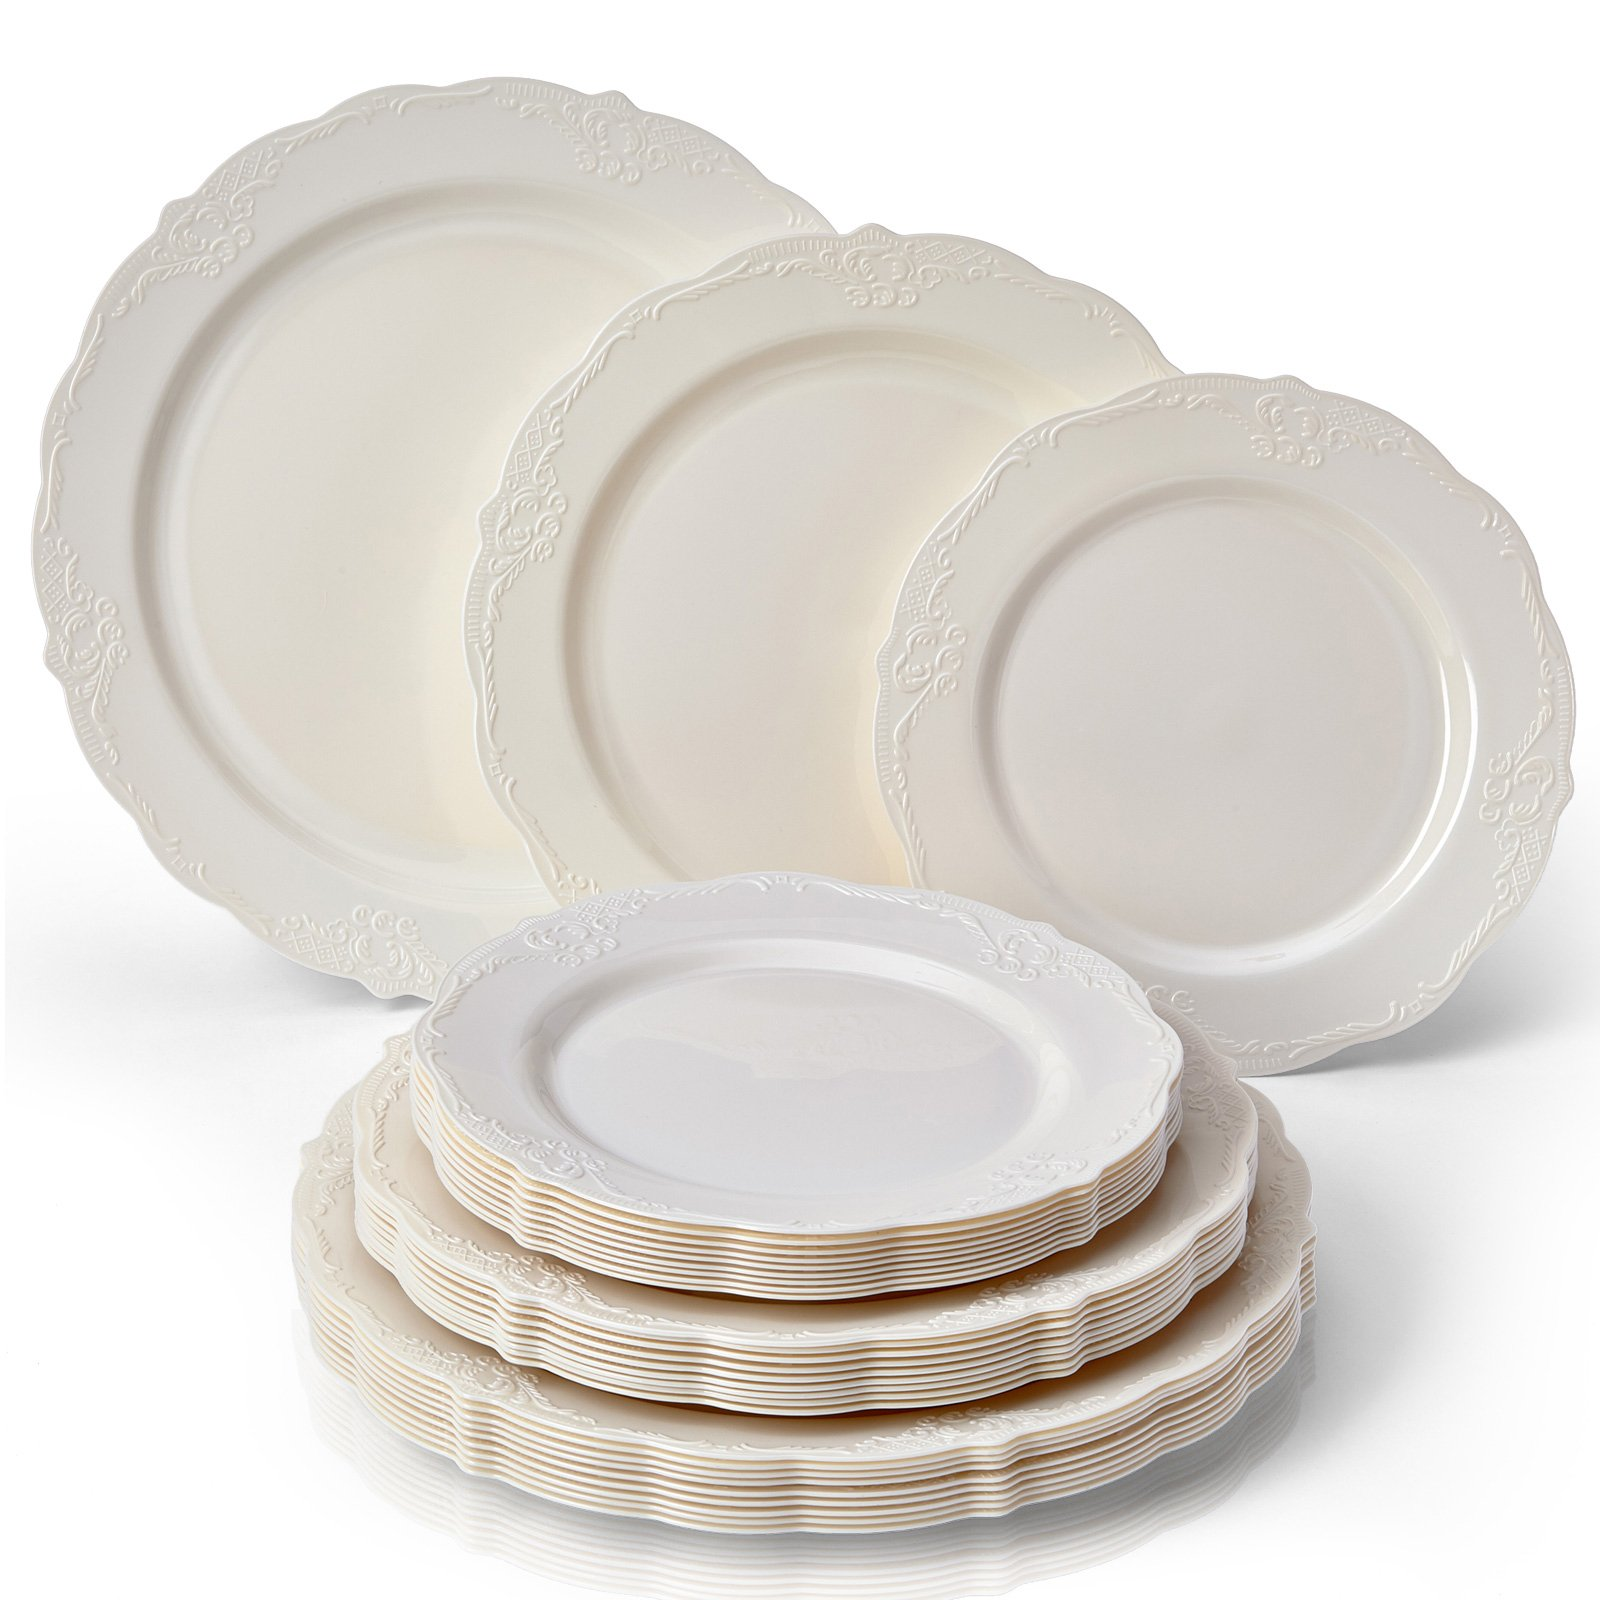 VINTAGE COLLECTION 120 PC DINNERWARE SET | 40 Dinner Plates | 40 Salad Plates | 40 Dessert Plates | Durable Plastic Dishes | Elegant Fine China Look | for Upscale Wedding and Dining (Cream) by Silver Spoons